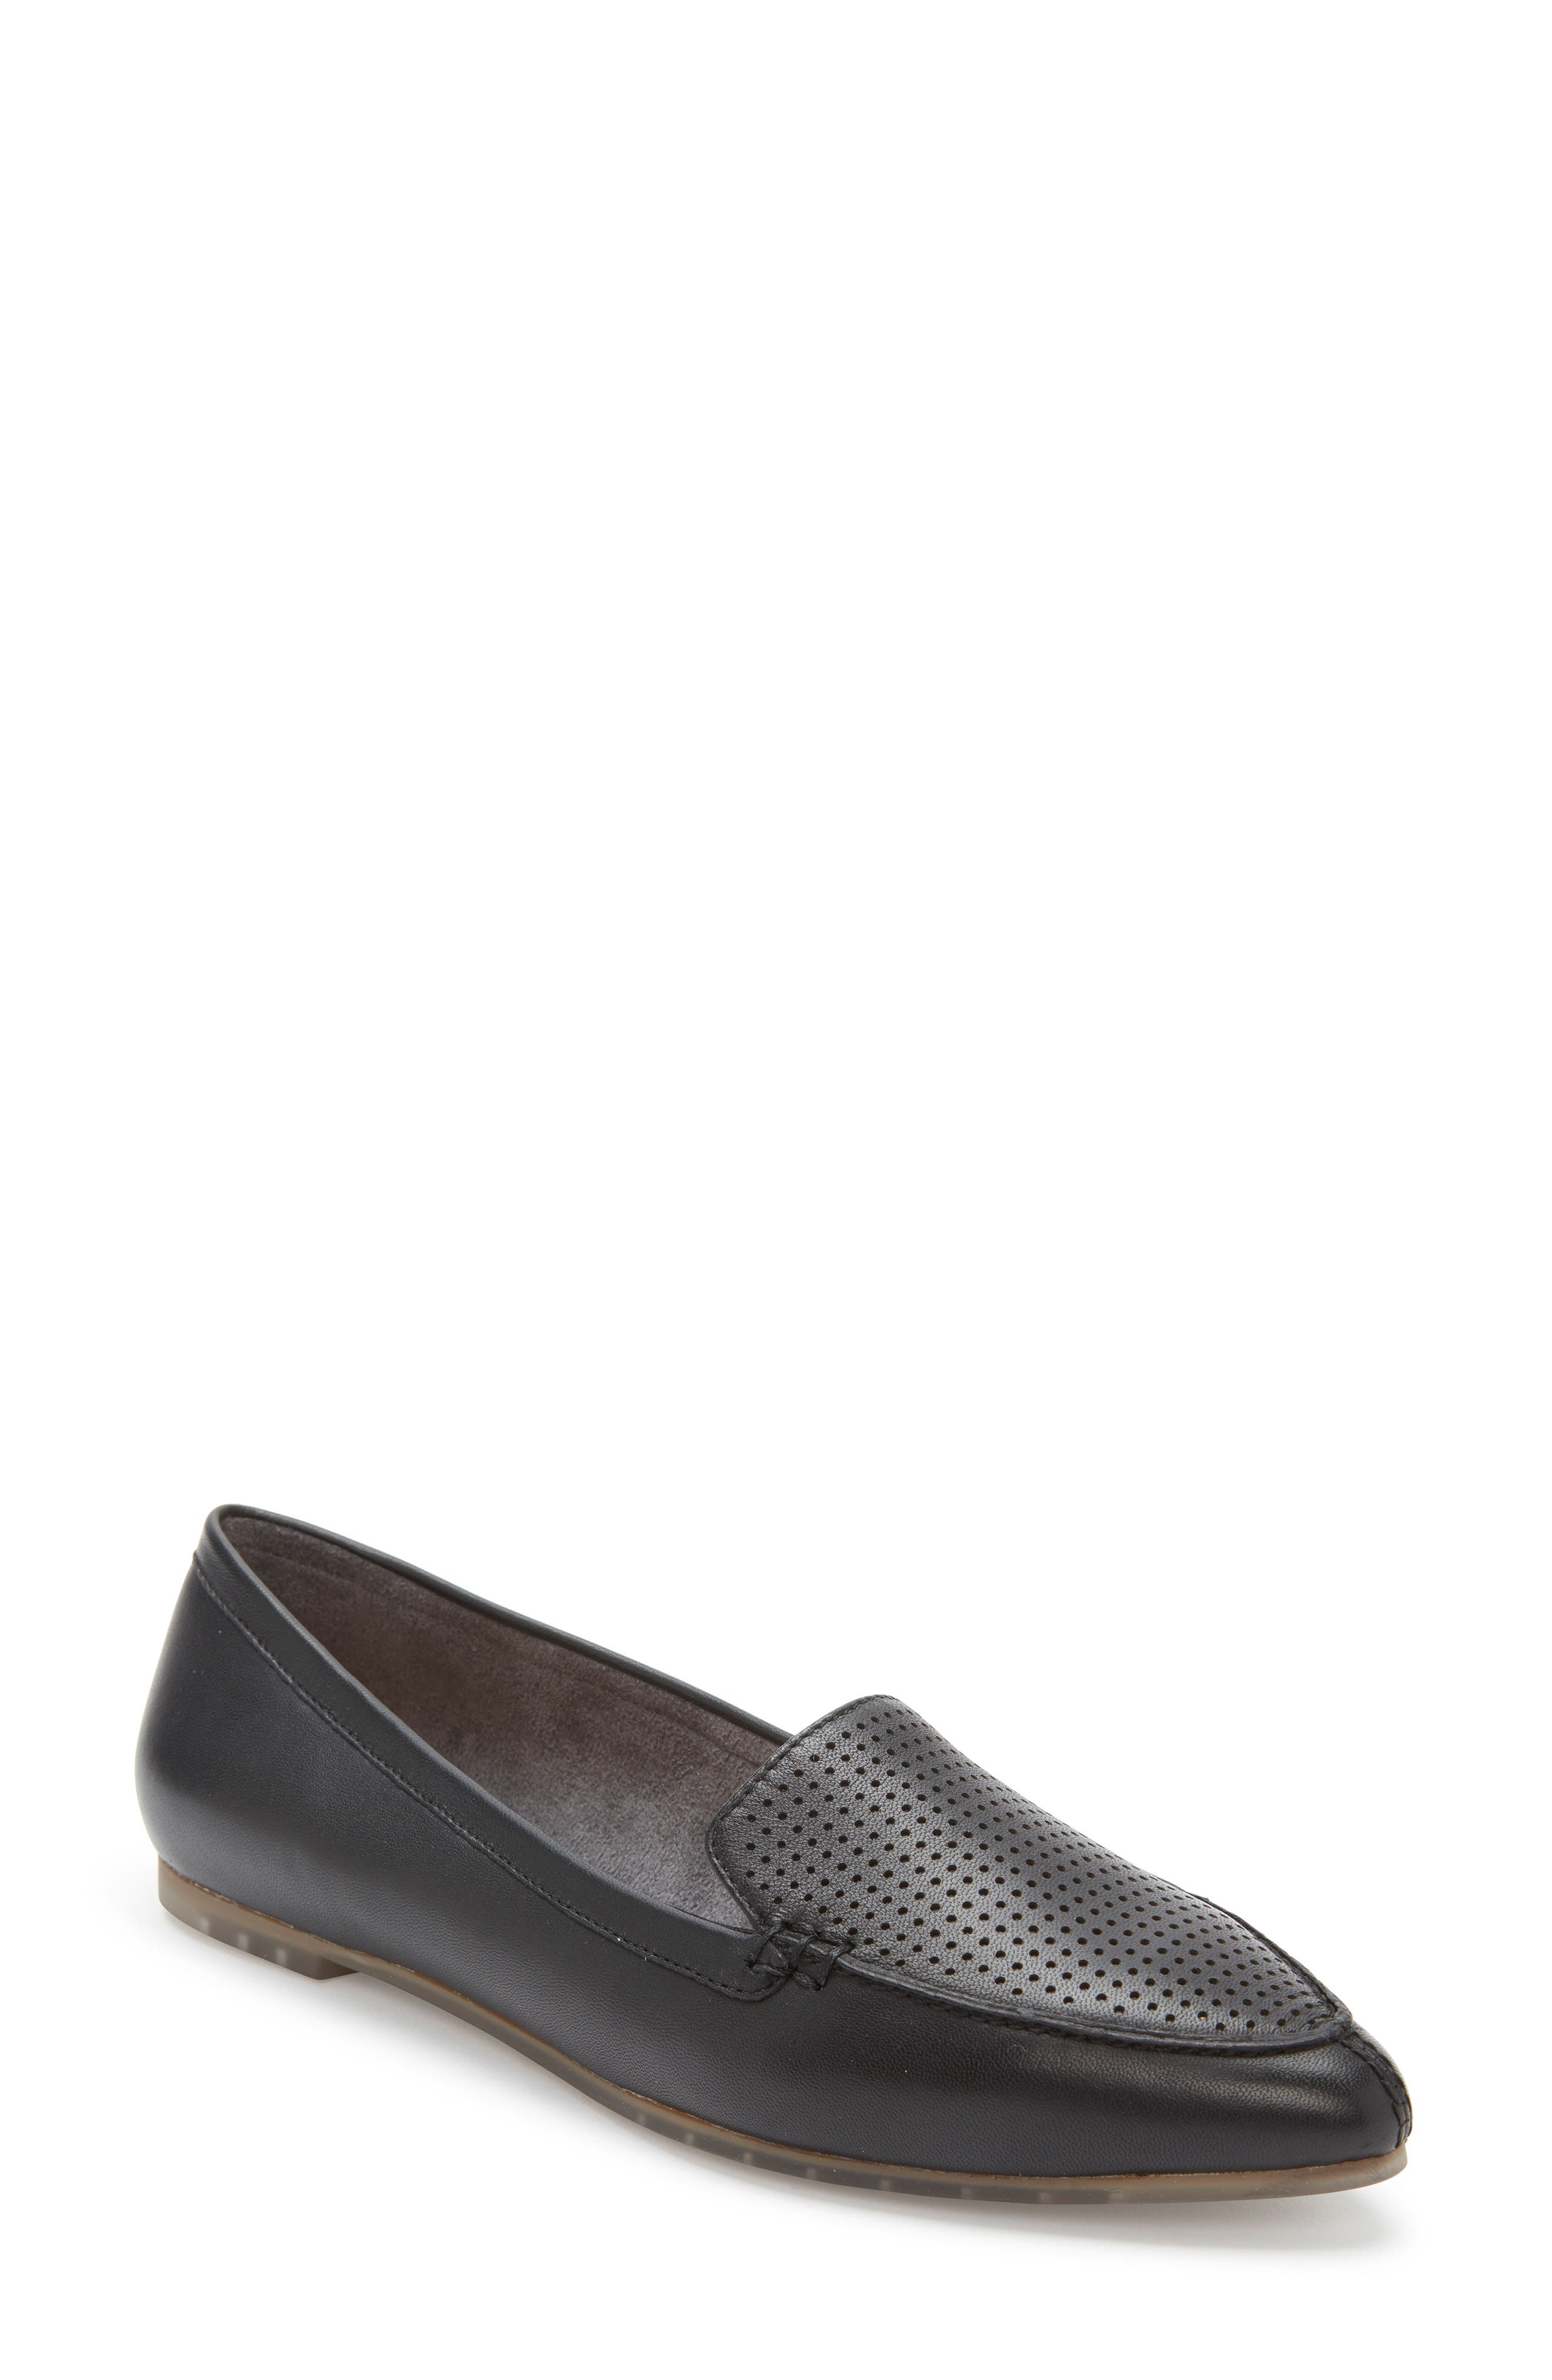 Me Too Alegra Perforated Pointy Toe Loafer- Black